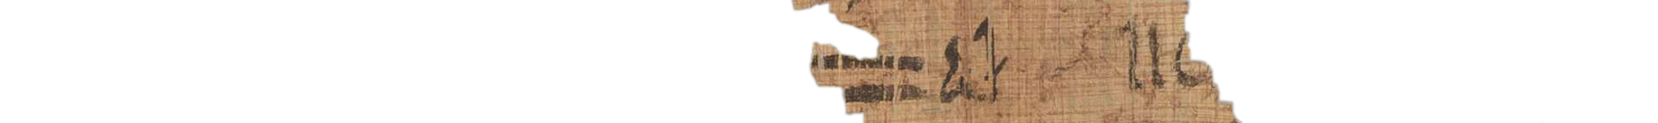 the Turin king list 4.11 (photo of the hieratic text)